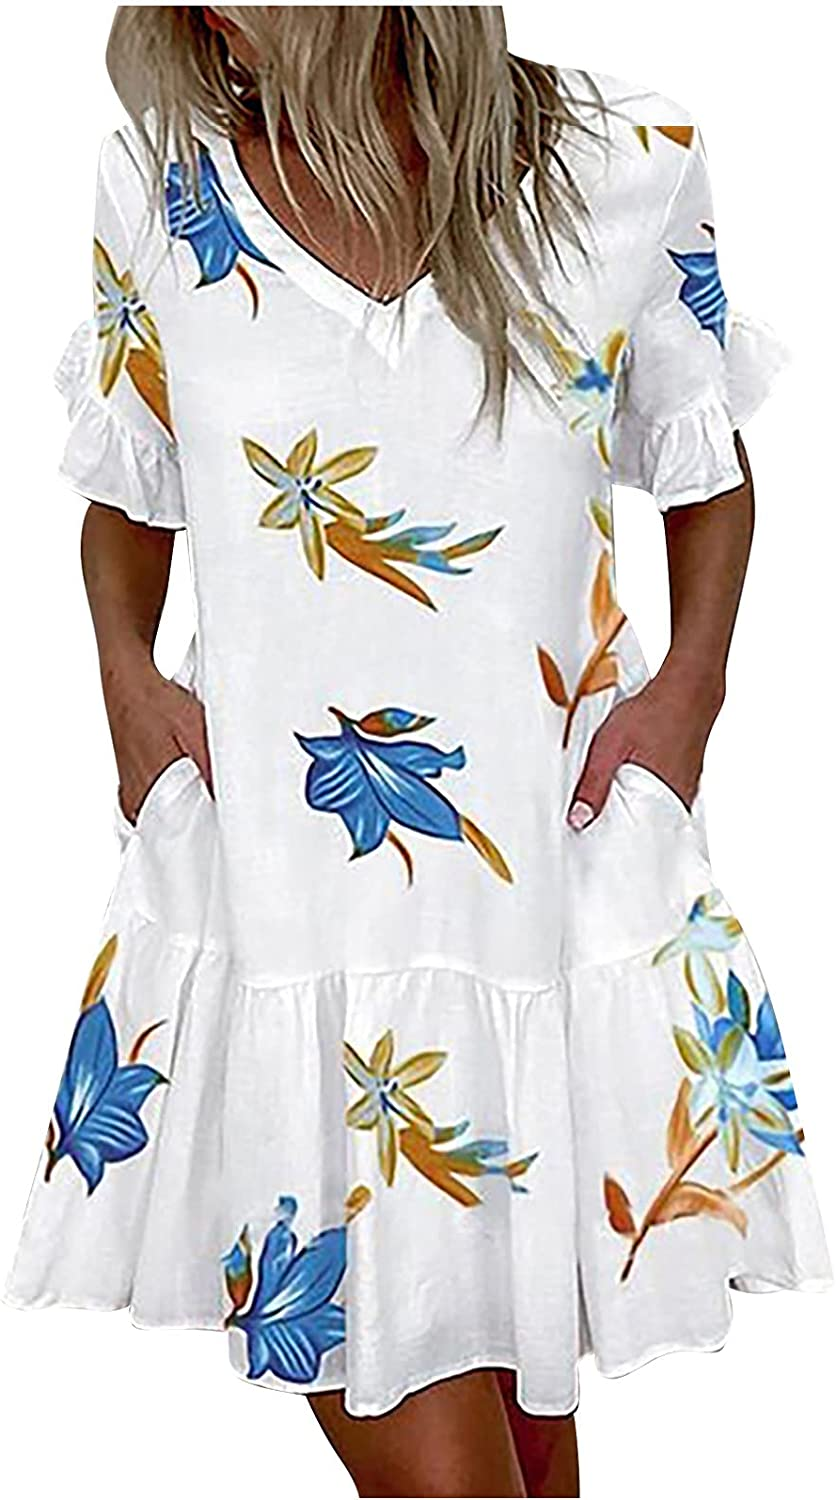 Summer Dress for Women Sexy V-Neck Ruffle Floral Slim Short Sleeve Loose Comfy Casual Beach Party Dress with Pocket